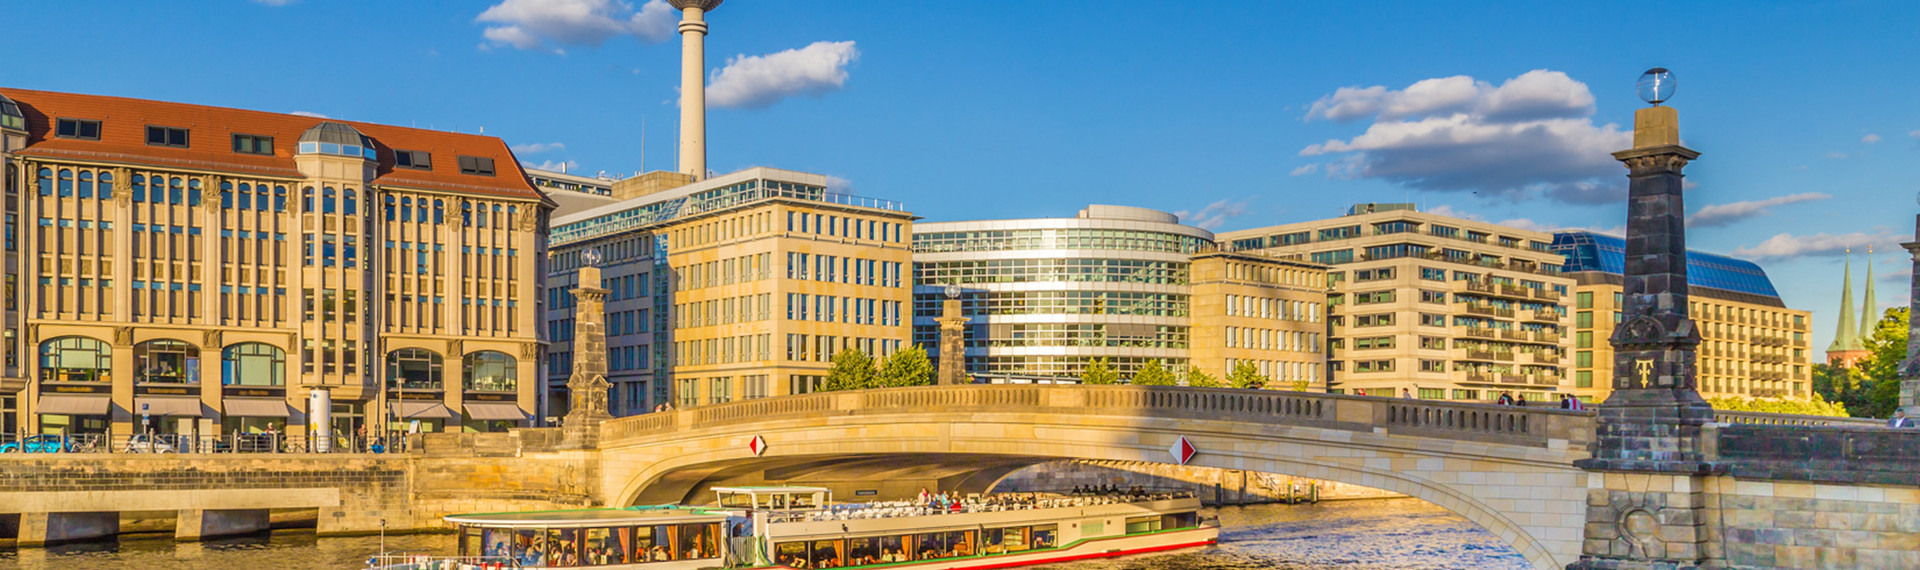 Boat Sightseeing Tour in Berlin for Stag Dos | Pissup